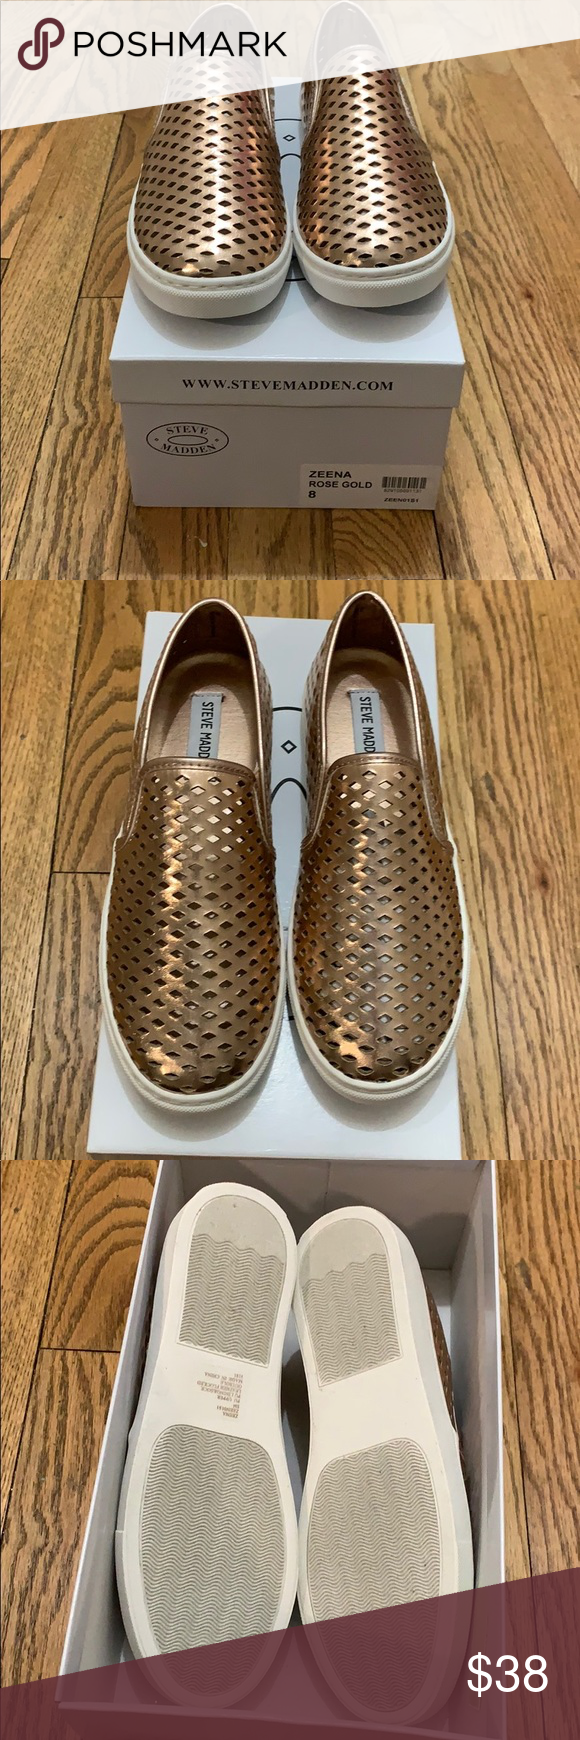 ad5d9771fd5 Steve Madden Zeena Rose Gold Slip On Sneakers New with box! Only worn at  home